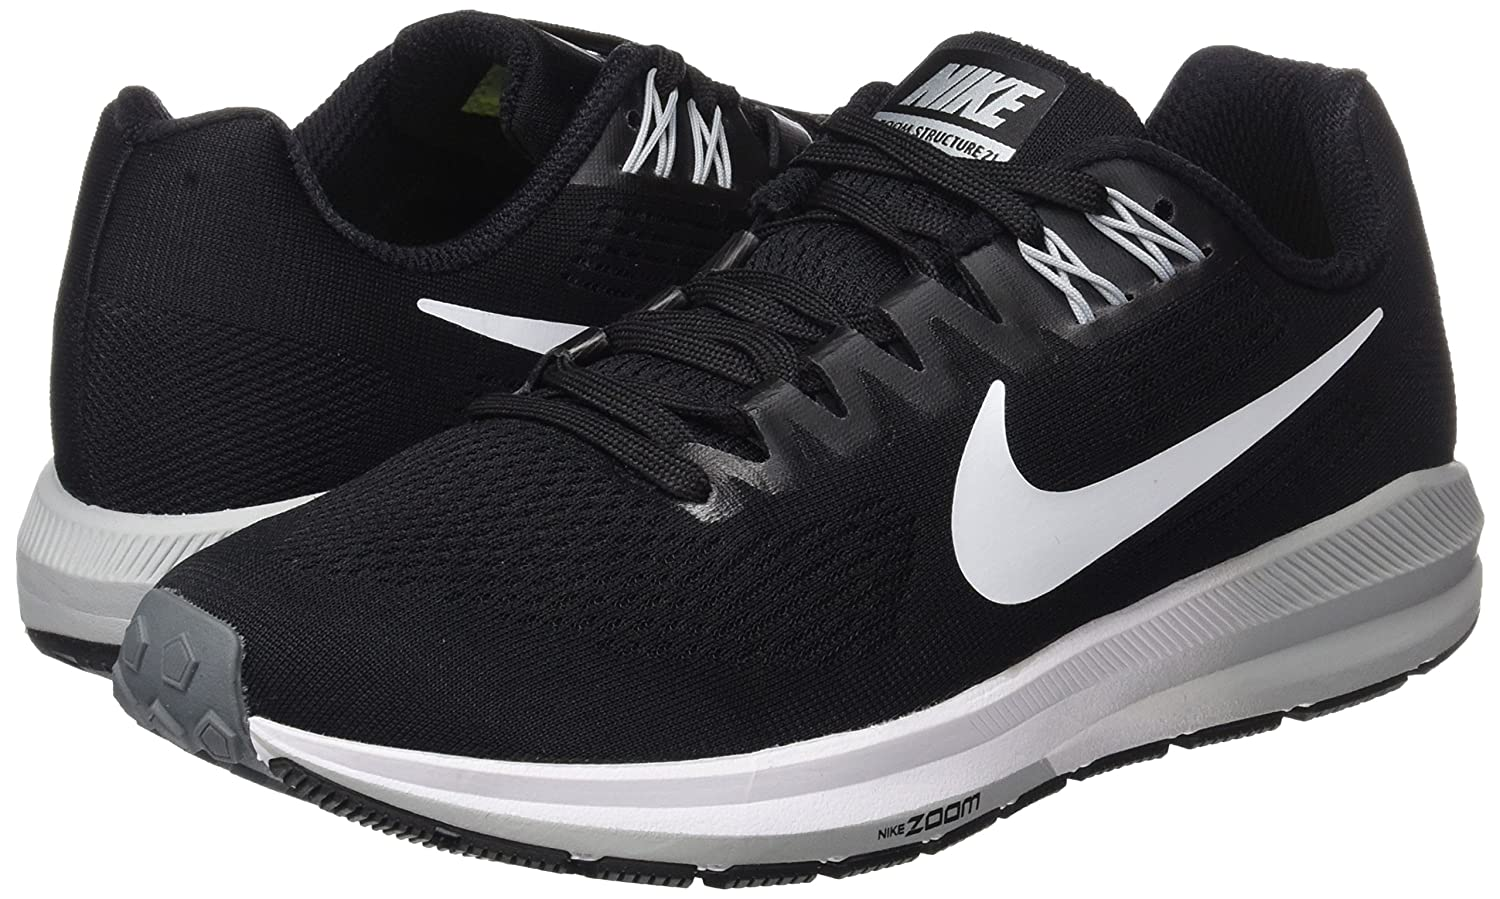 NIKE Women's Air Zoom Structure 21 Running Shoe B075N45LG5 9.5 M US|Black/White/Wolf/Grey